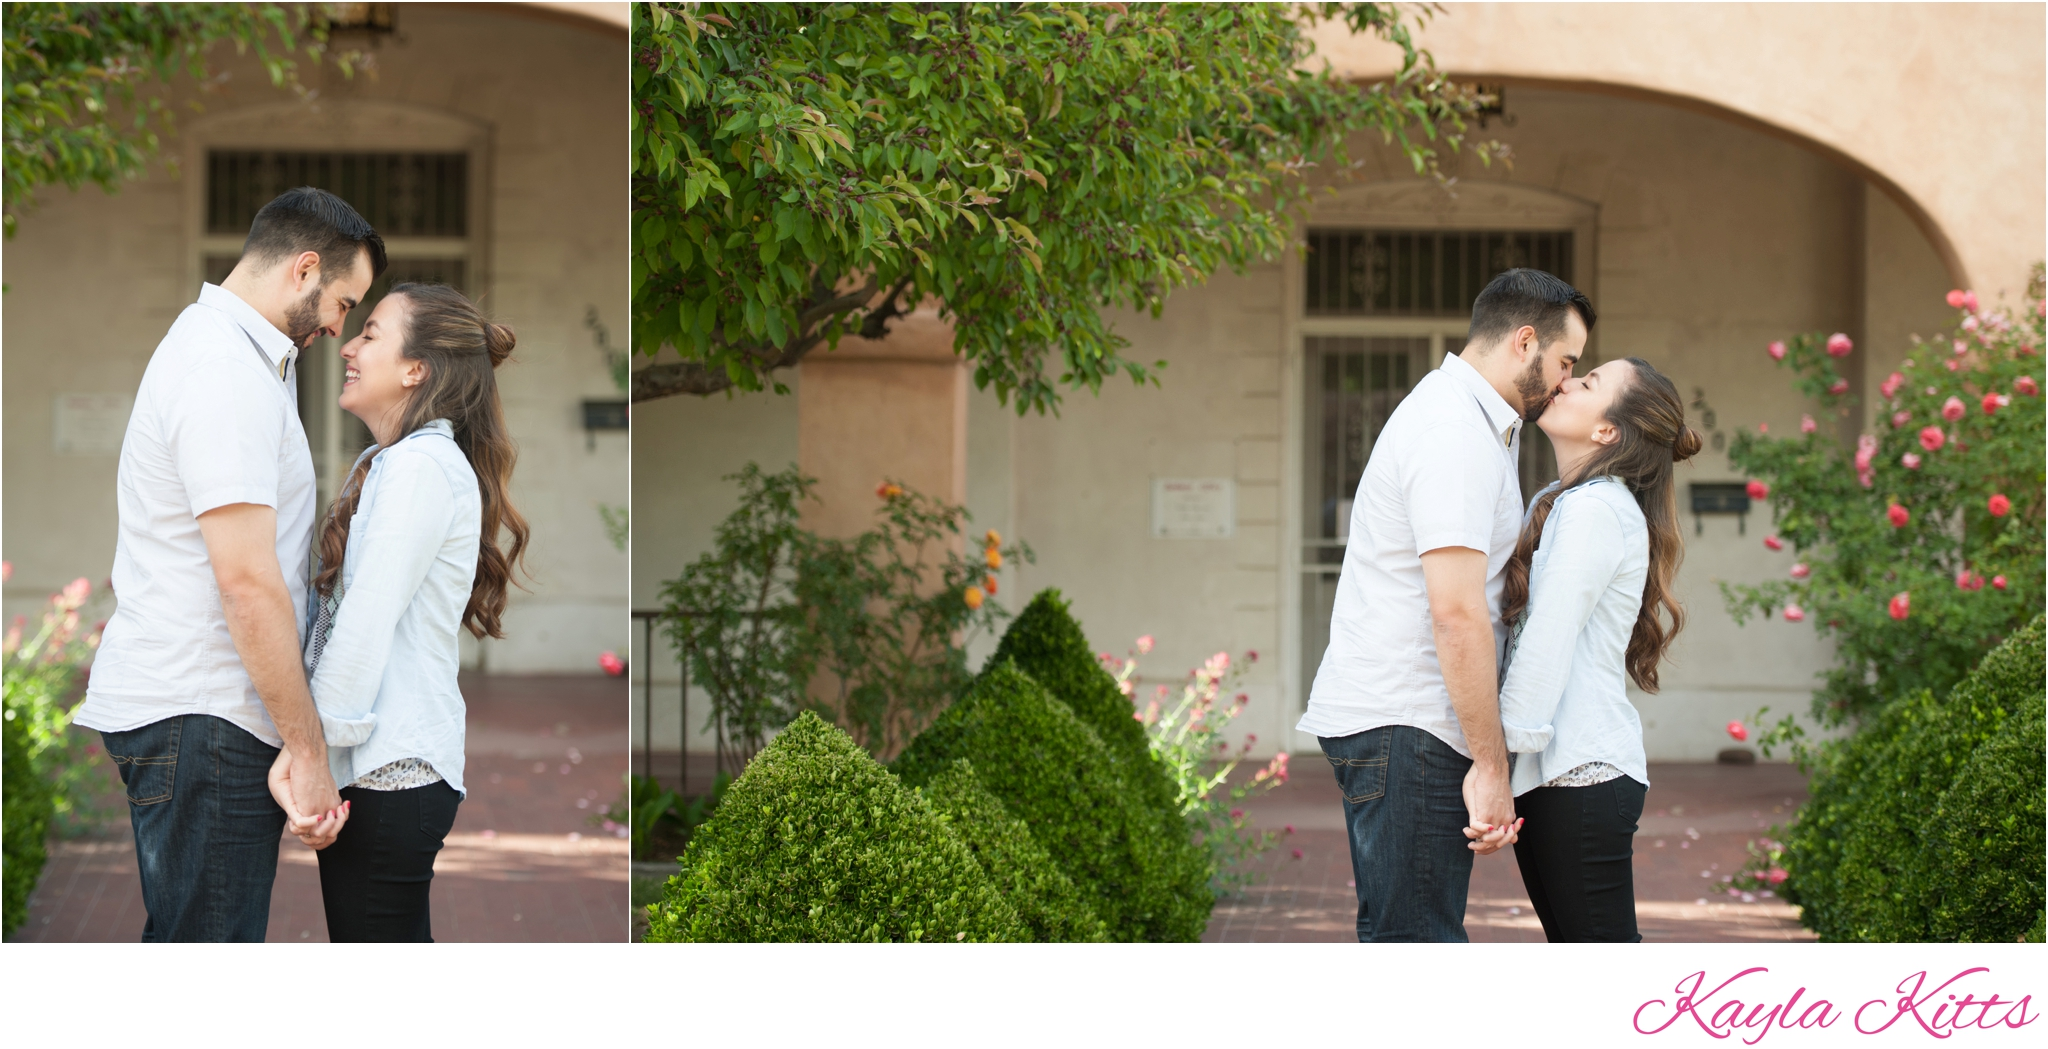 kayla kitts photography - albuquerque wedding photographer - green jeans - brewery engagement session - old town - destination wedding - cabo wedding photographer - santa fe brewery_0012.jpg